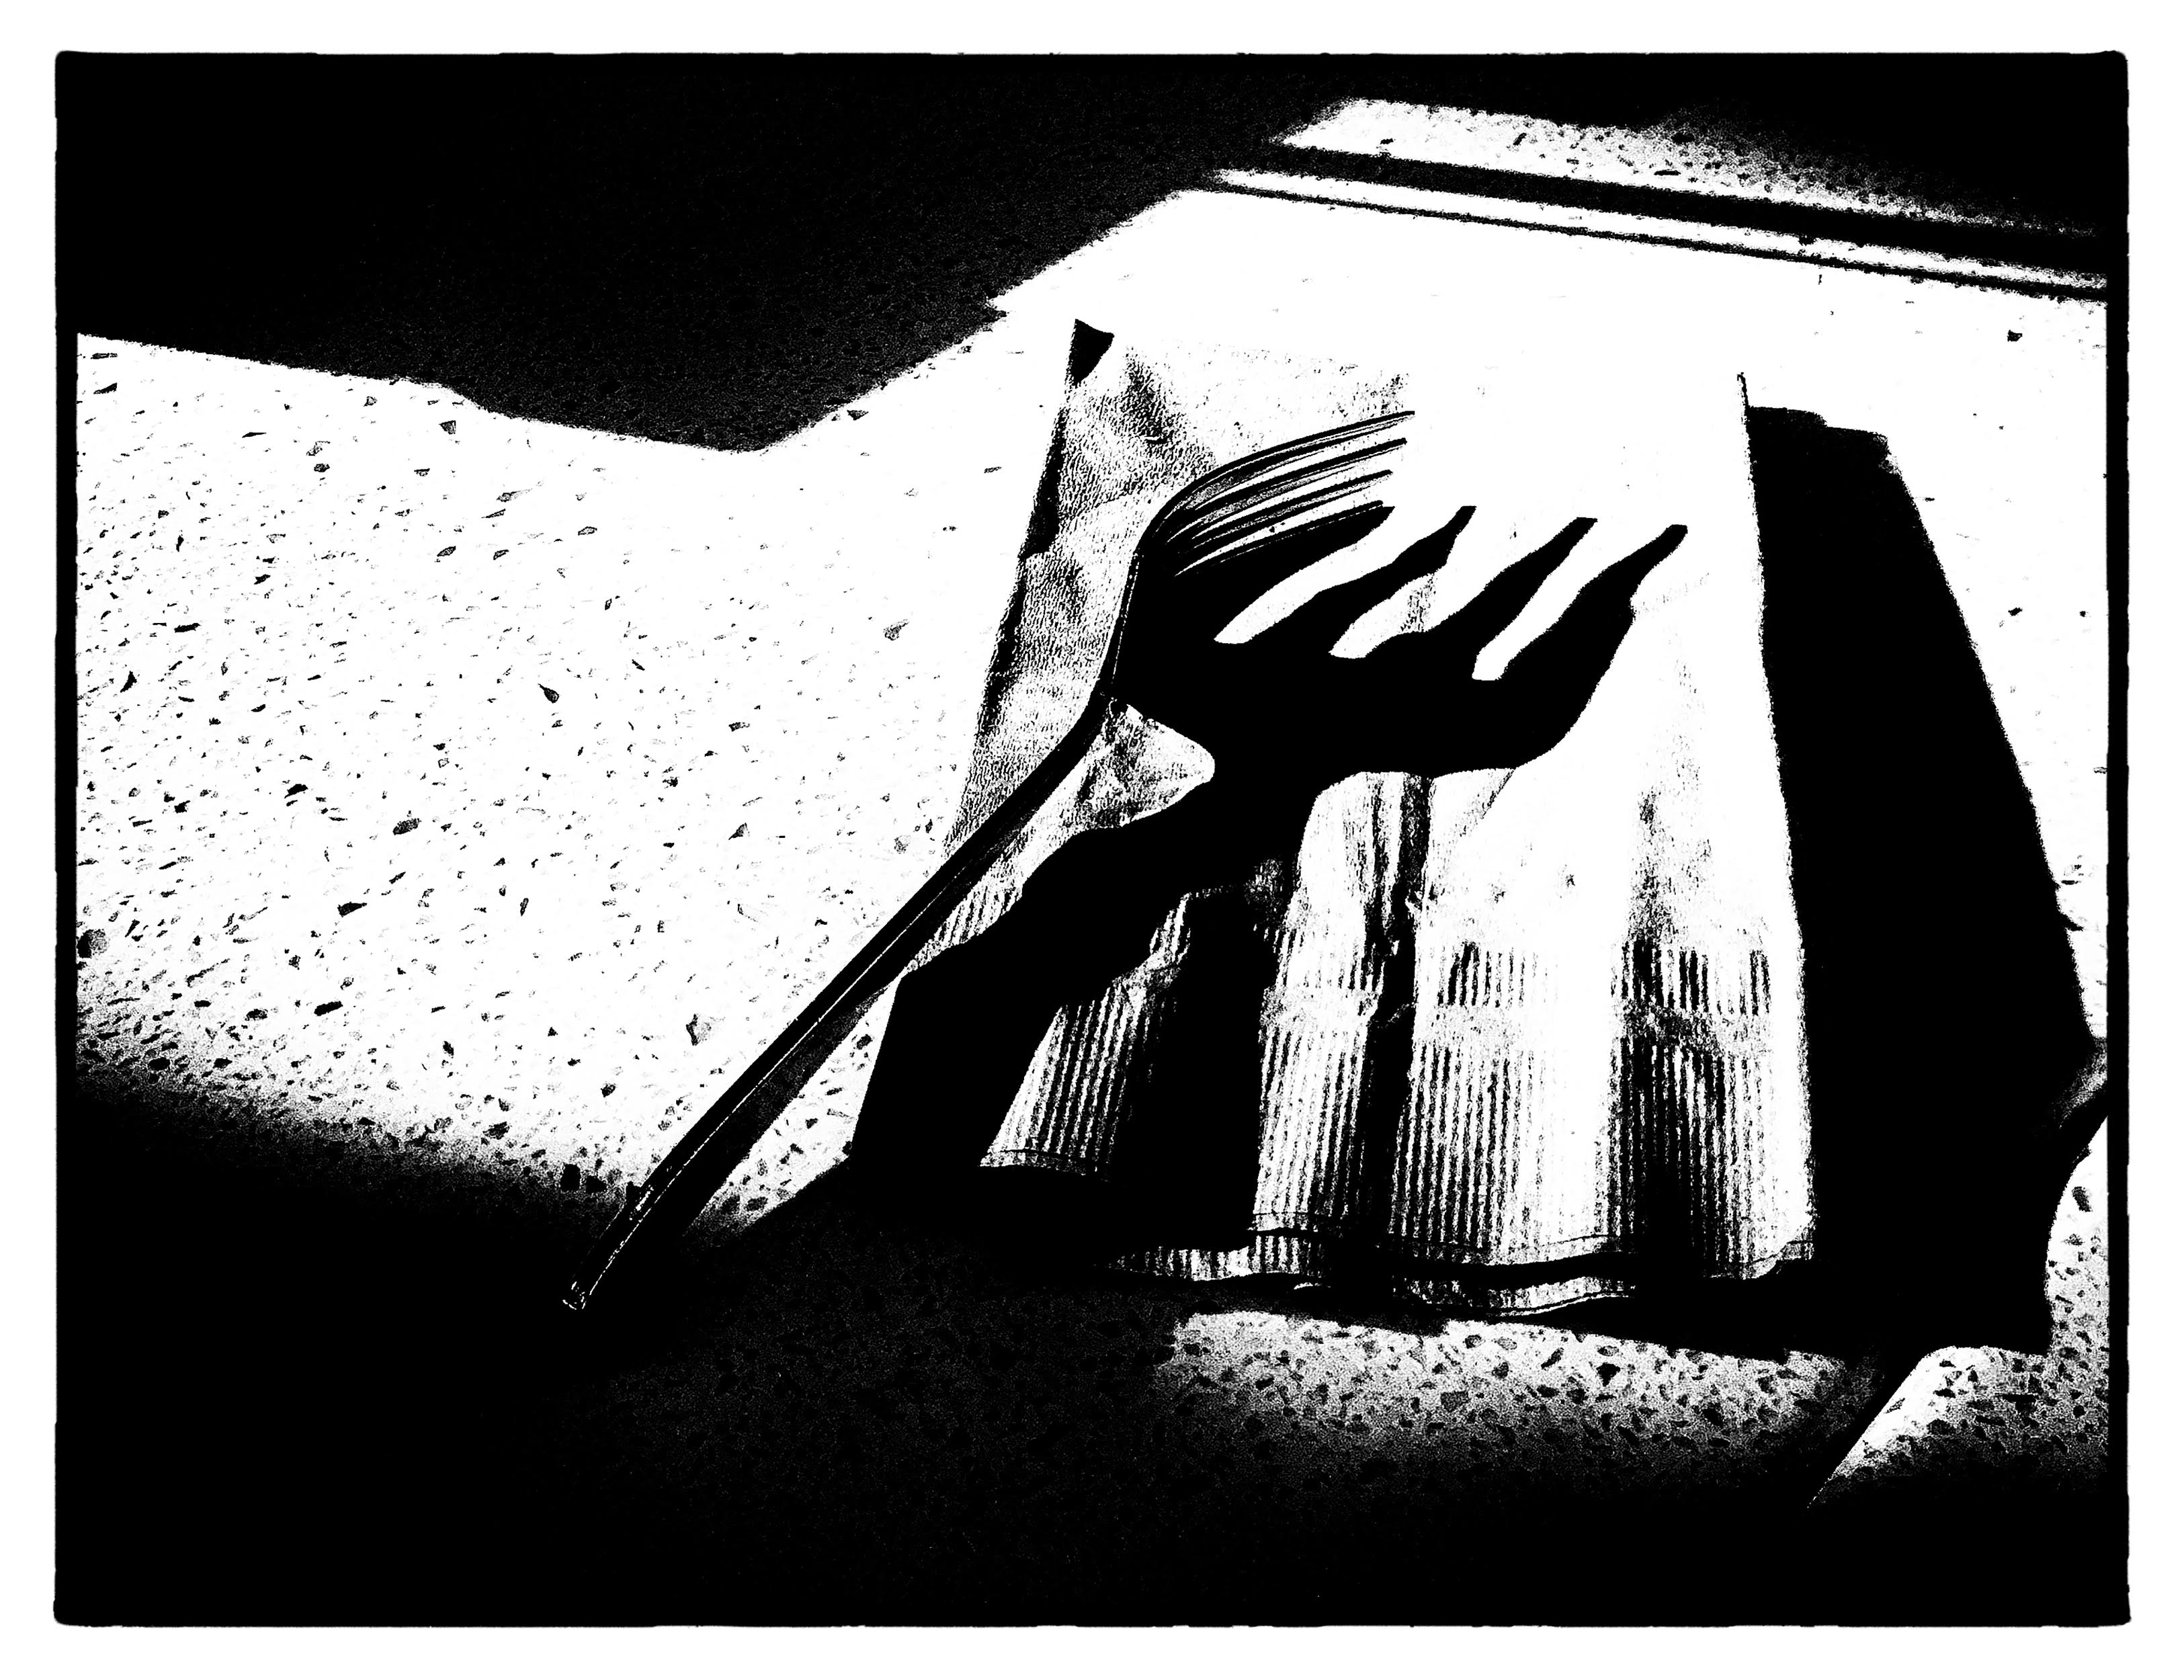 """Artist comments: """"I captured this with my iPhone while waiting for dinner at an outdoor cafe in Mountain View. It was sundown, and I was attracted by the strong shadows cast by the fork on the napkin. The monochrome and 'noir' rendition was created in post-processing. This evoked the title."""""""